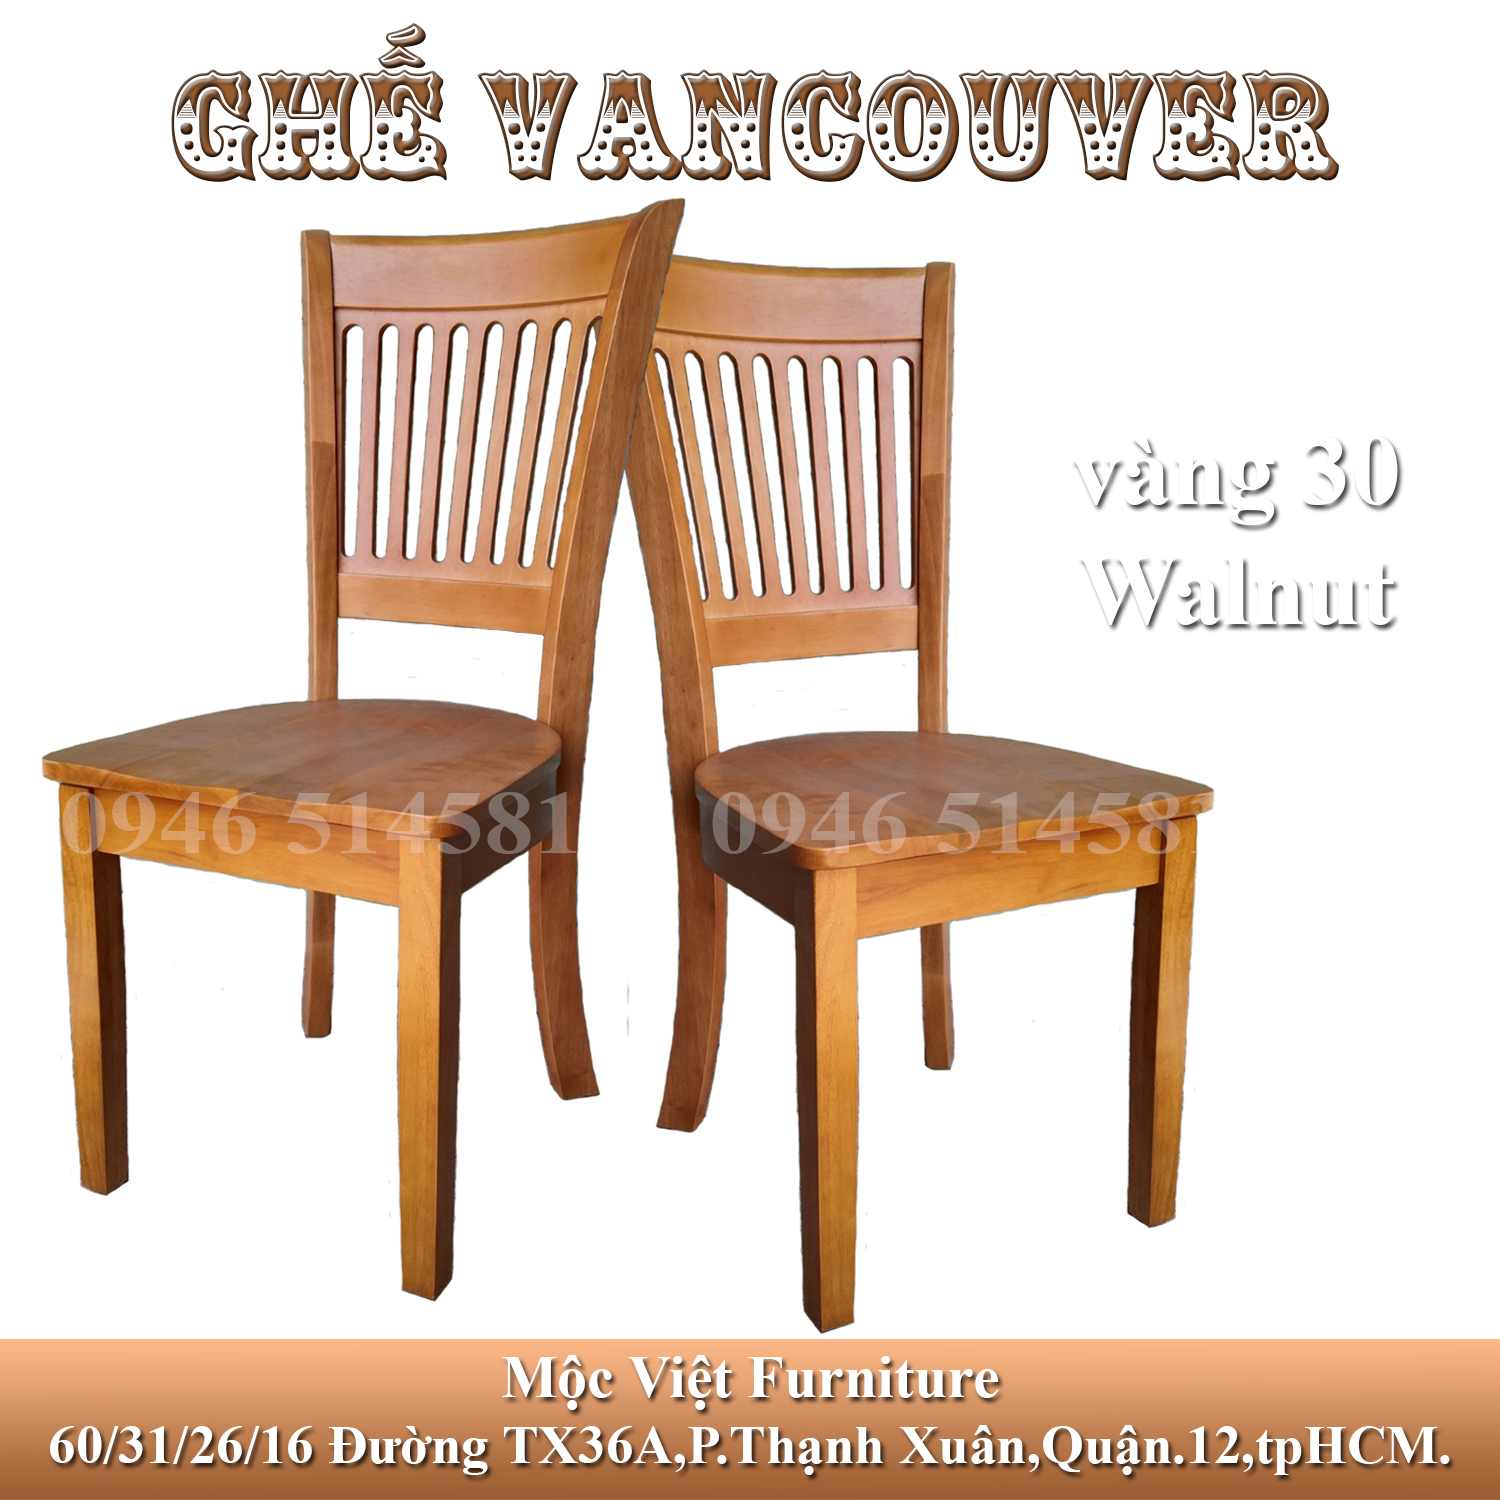 ghY vancouver